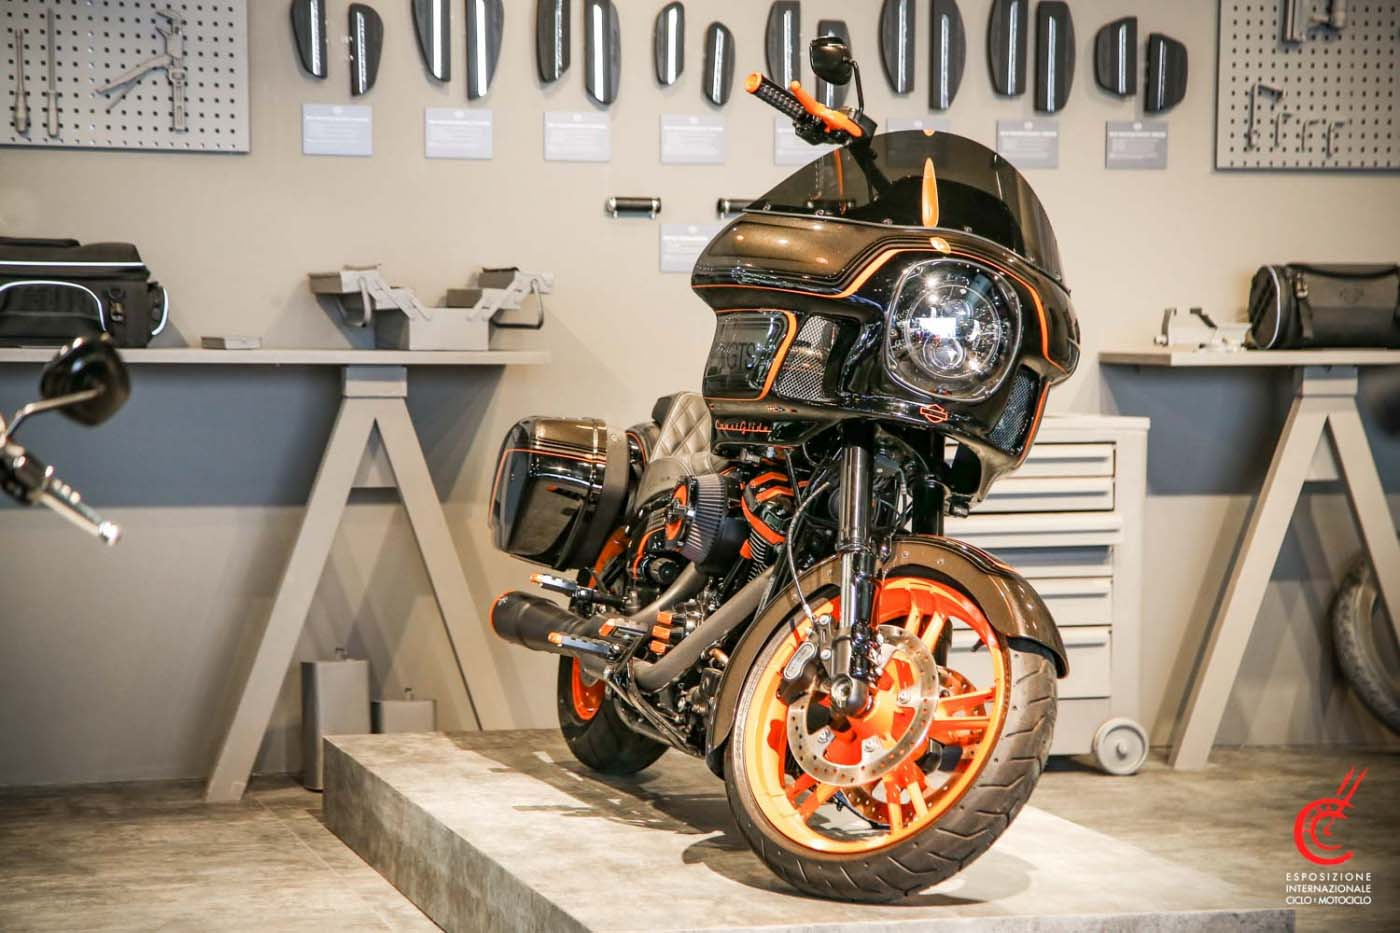 Die Battle of the Kings FXGTS Coast Glide von Laidlaw auf der EICMA in Messe in Mailand